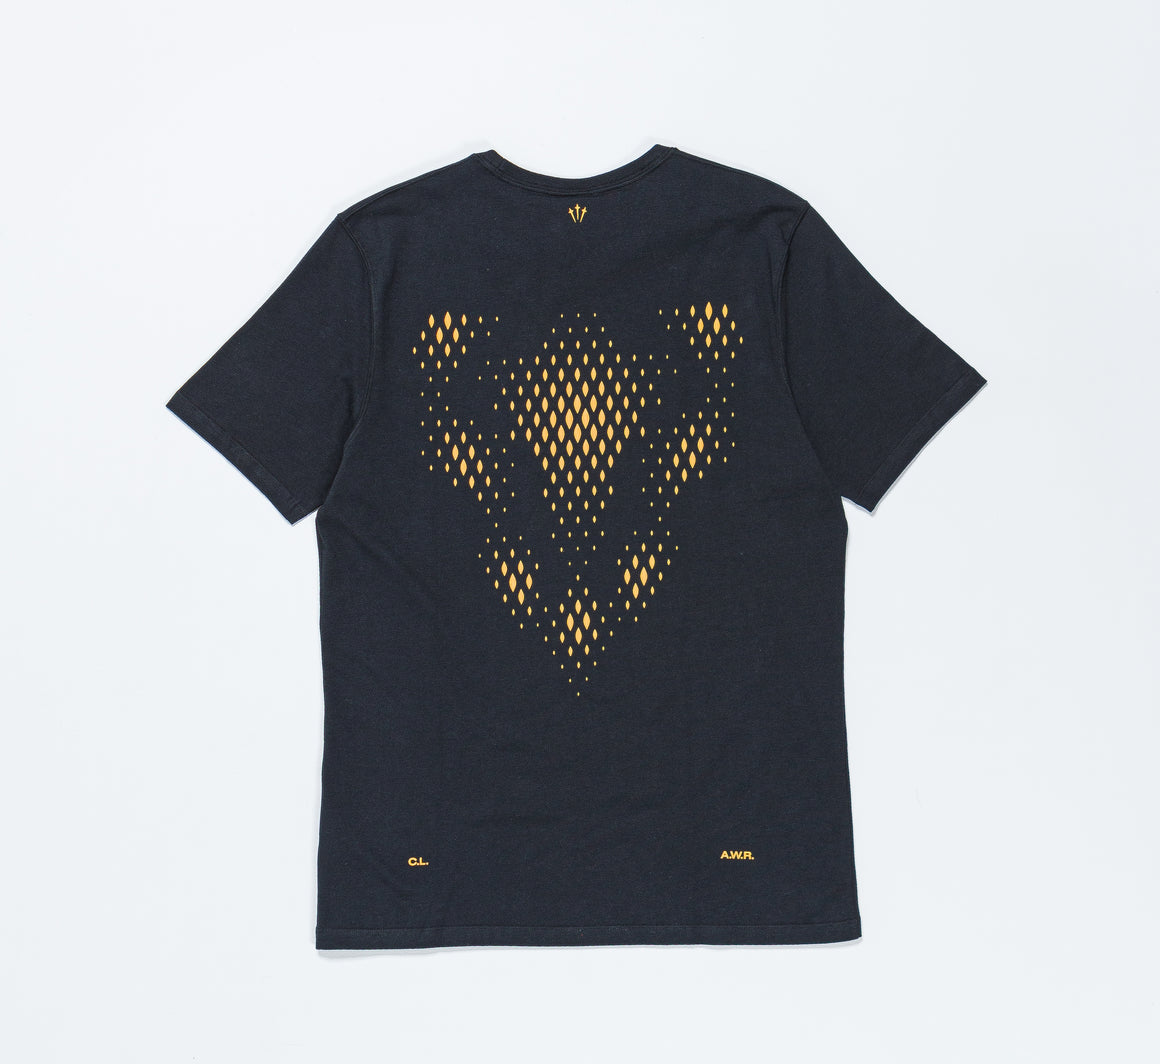 Nike - Nocta NRG Essentials SS Top - Black/University Gold - Up There